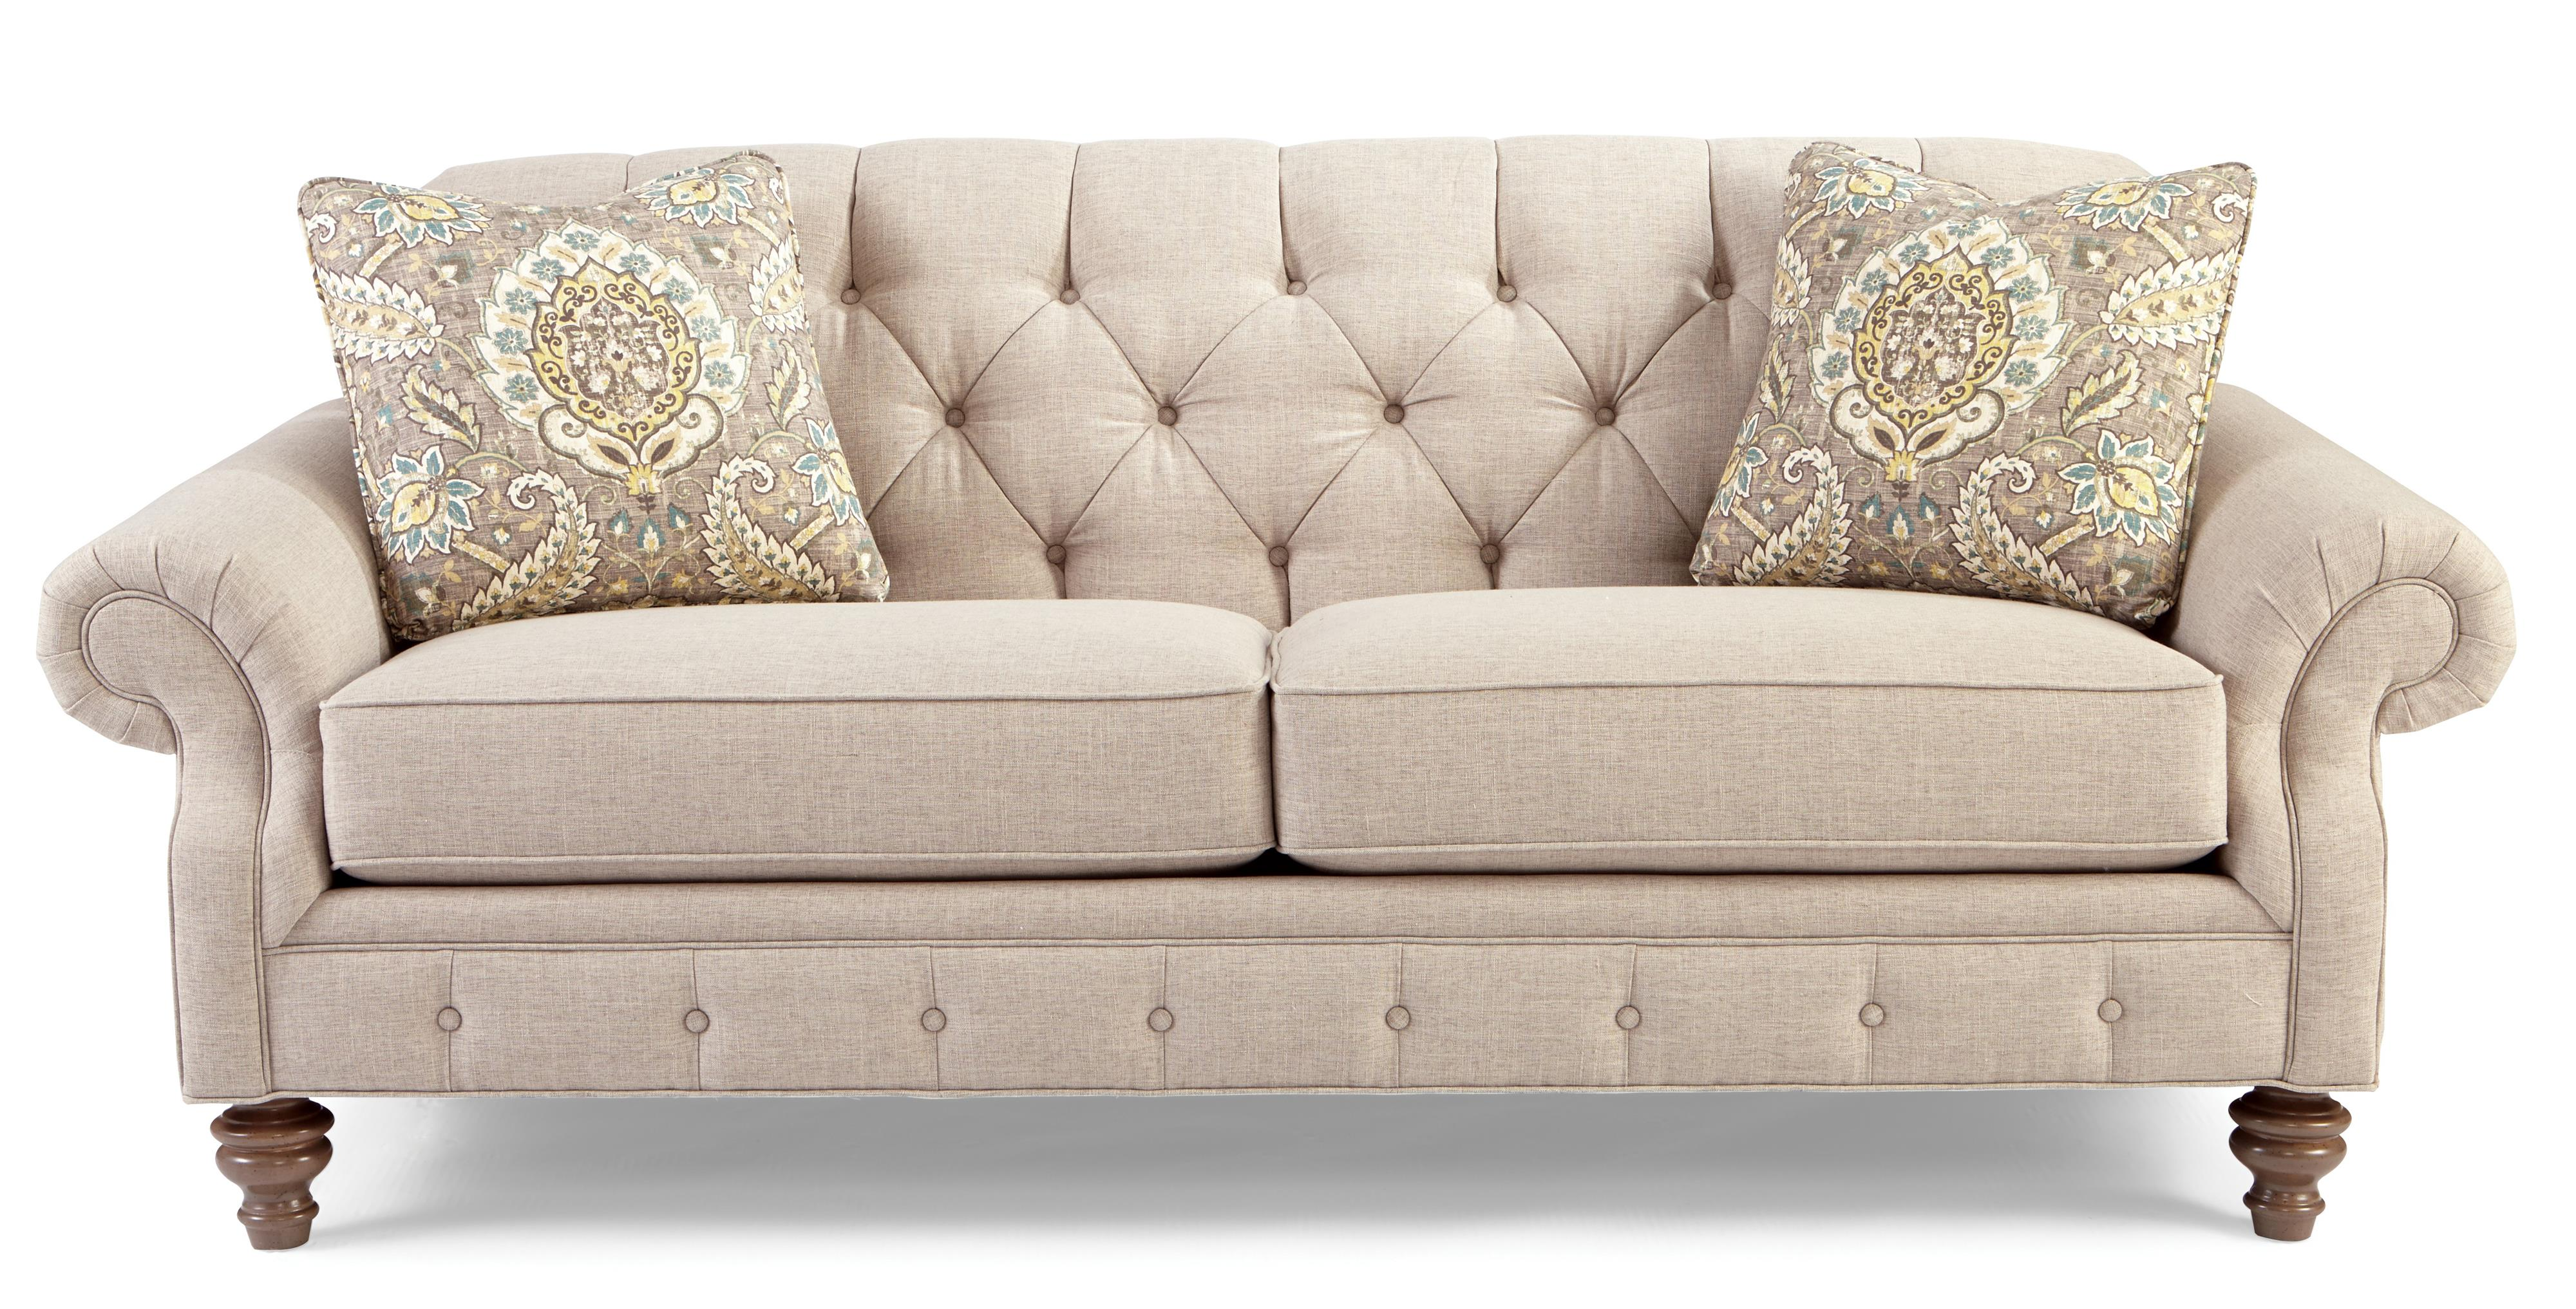 Exceptionnel Traditional Button Tufted Sofa With Wide Flared Arms